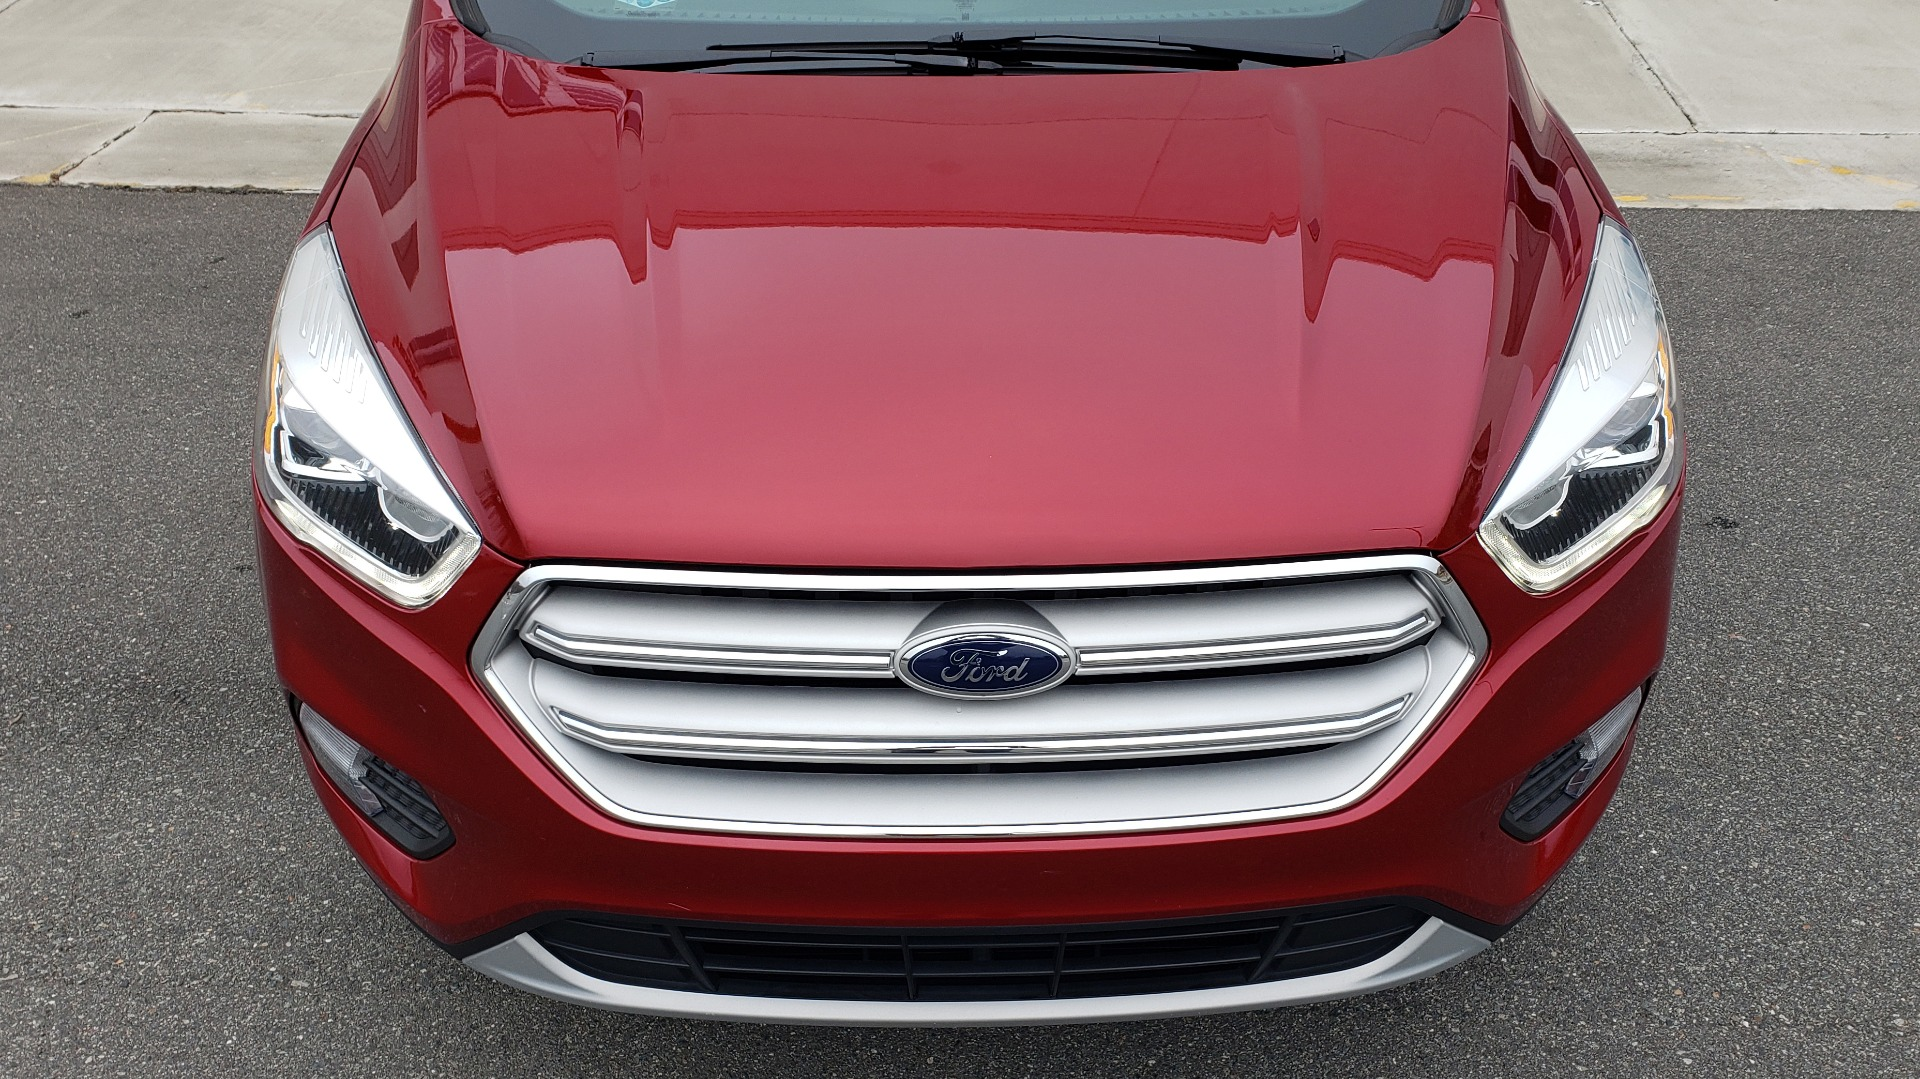 Used 2018 Ford ESCAPE SEL / FWD / 1.5L ECOBOOST / PANO-ROOF / REARVIEW for sale Sold at Formula Imports in Charlotte NC 28227 27